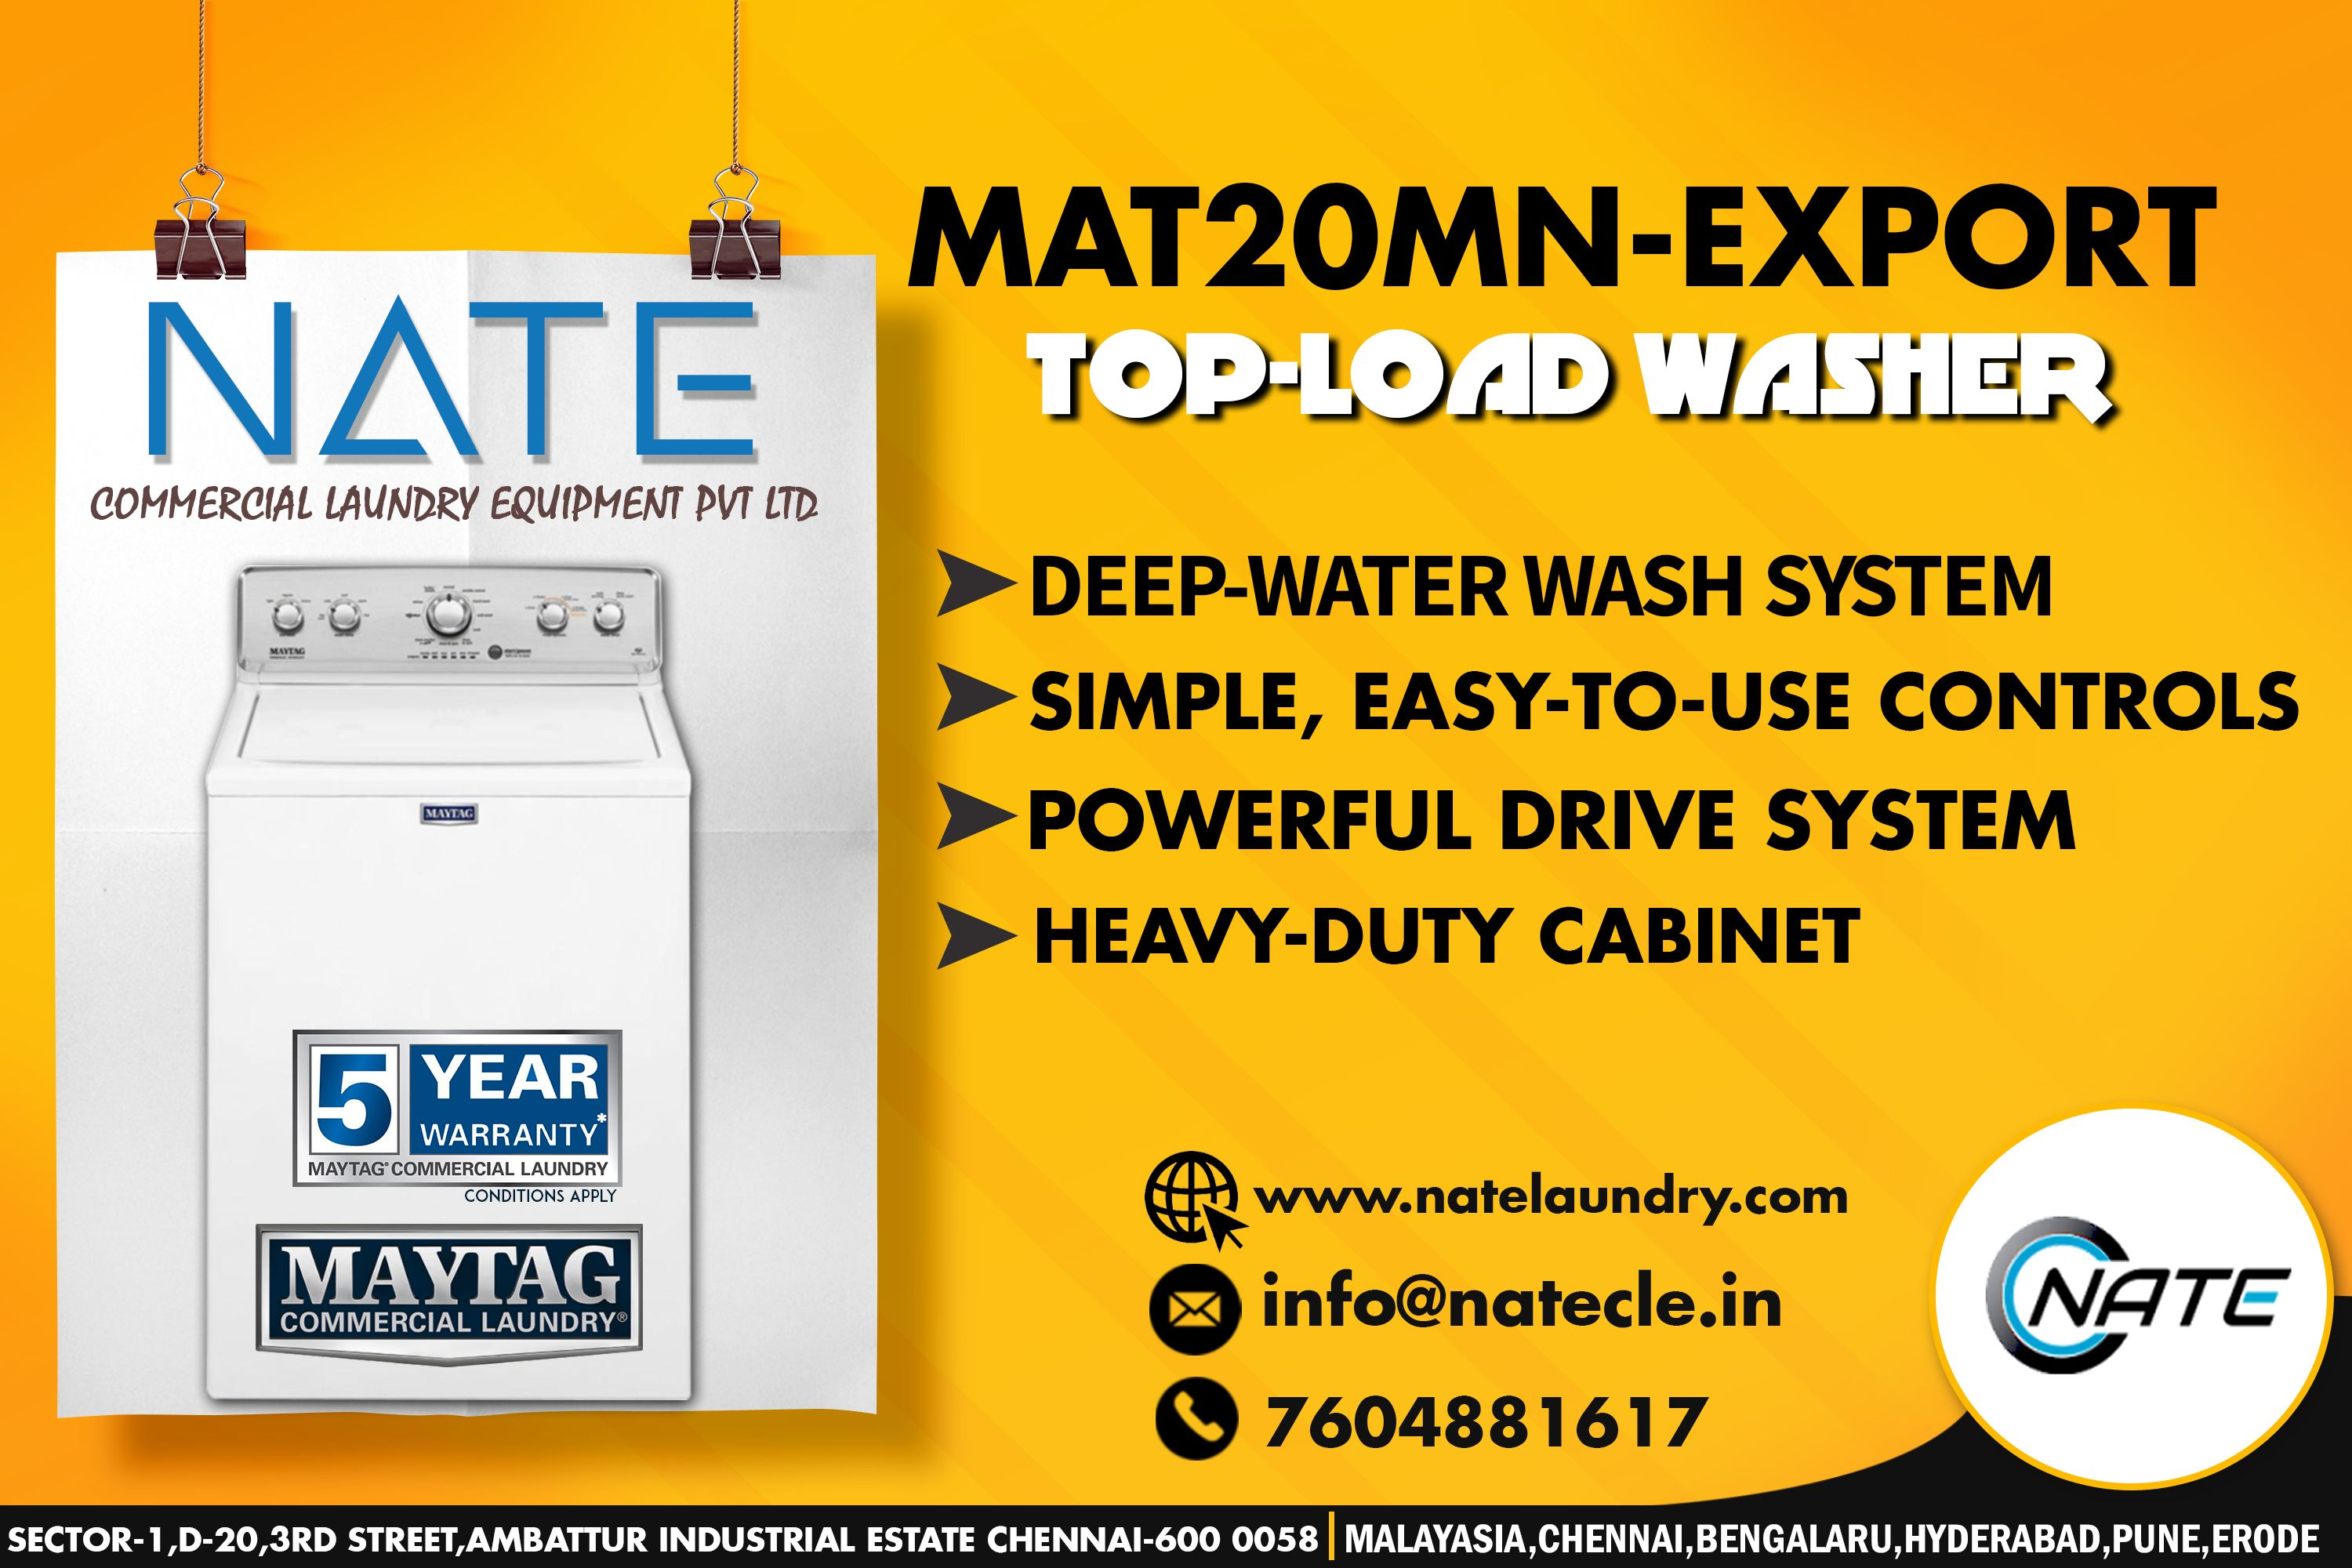 Pin By Nate Commercial Laundry Equipment Pvt Ltd On Commercial